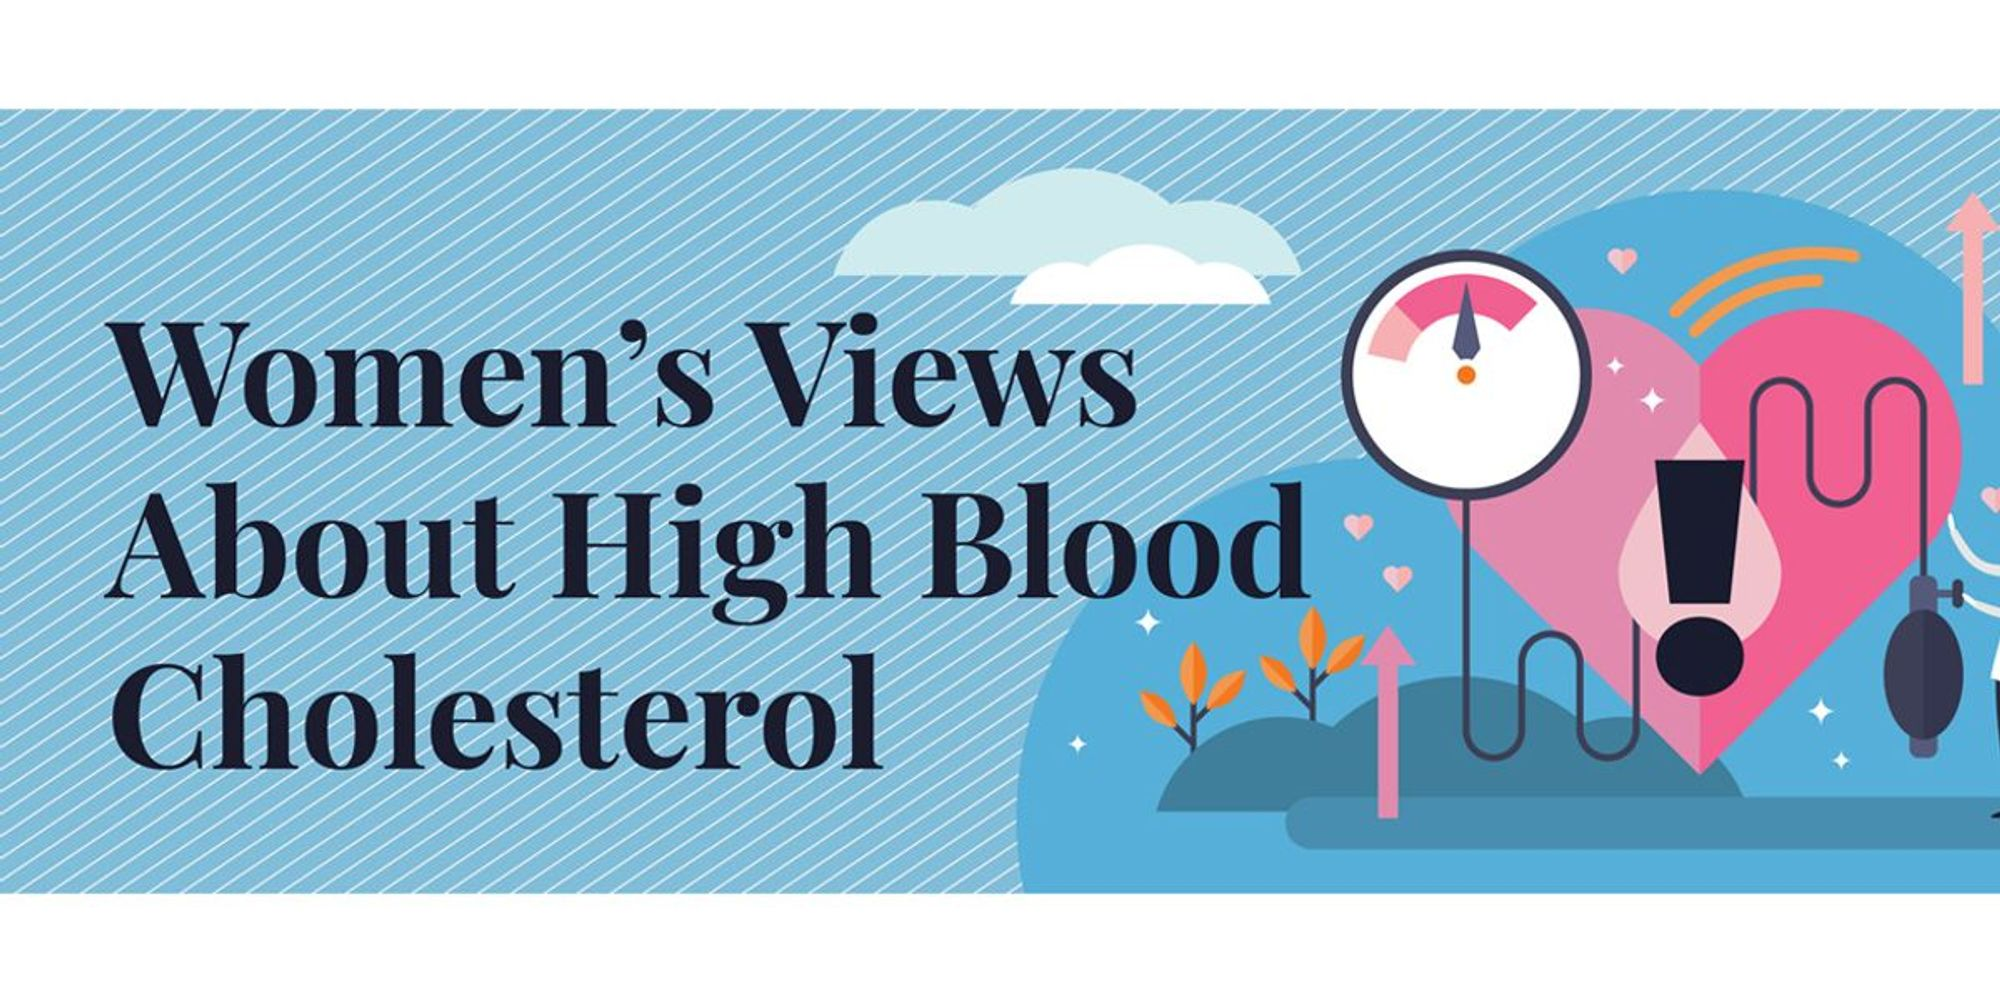 What Are Women's Views About High Blood Cholesterol?